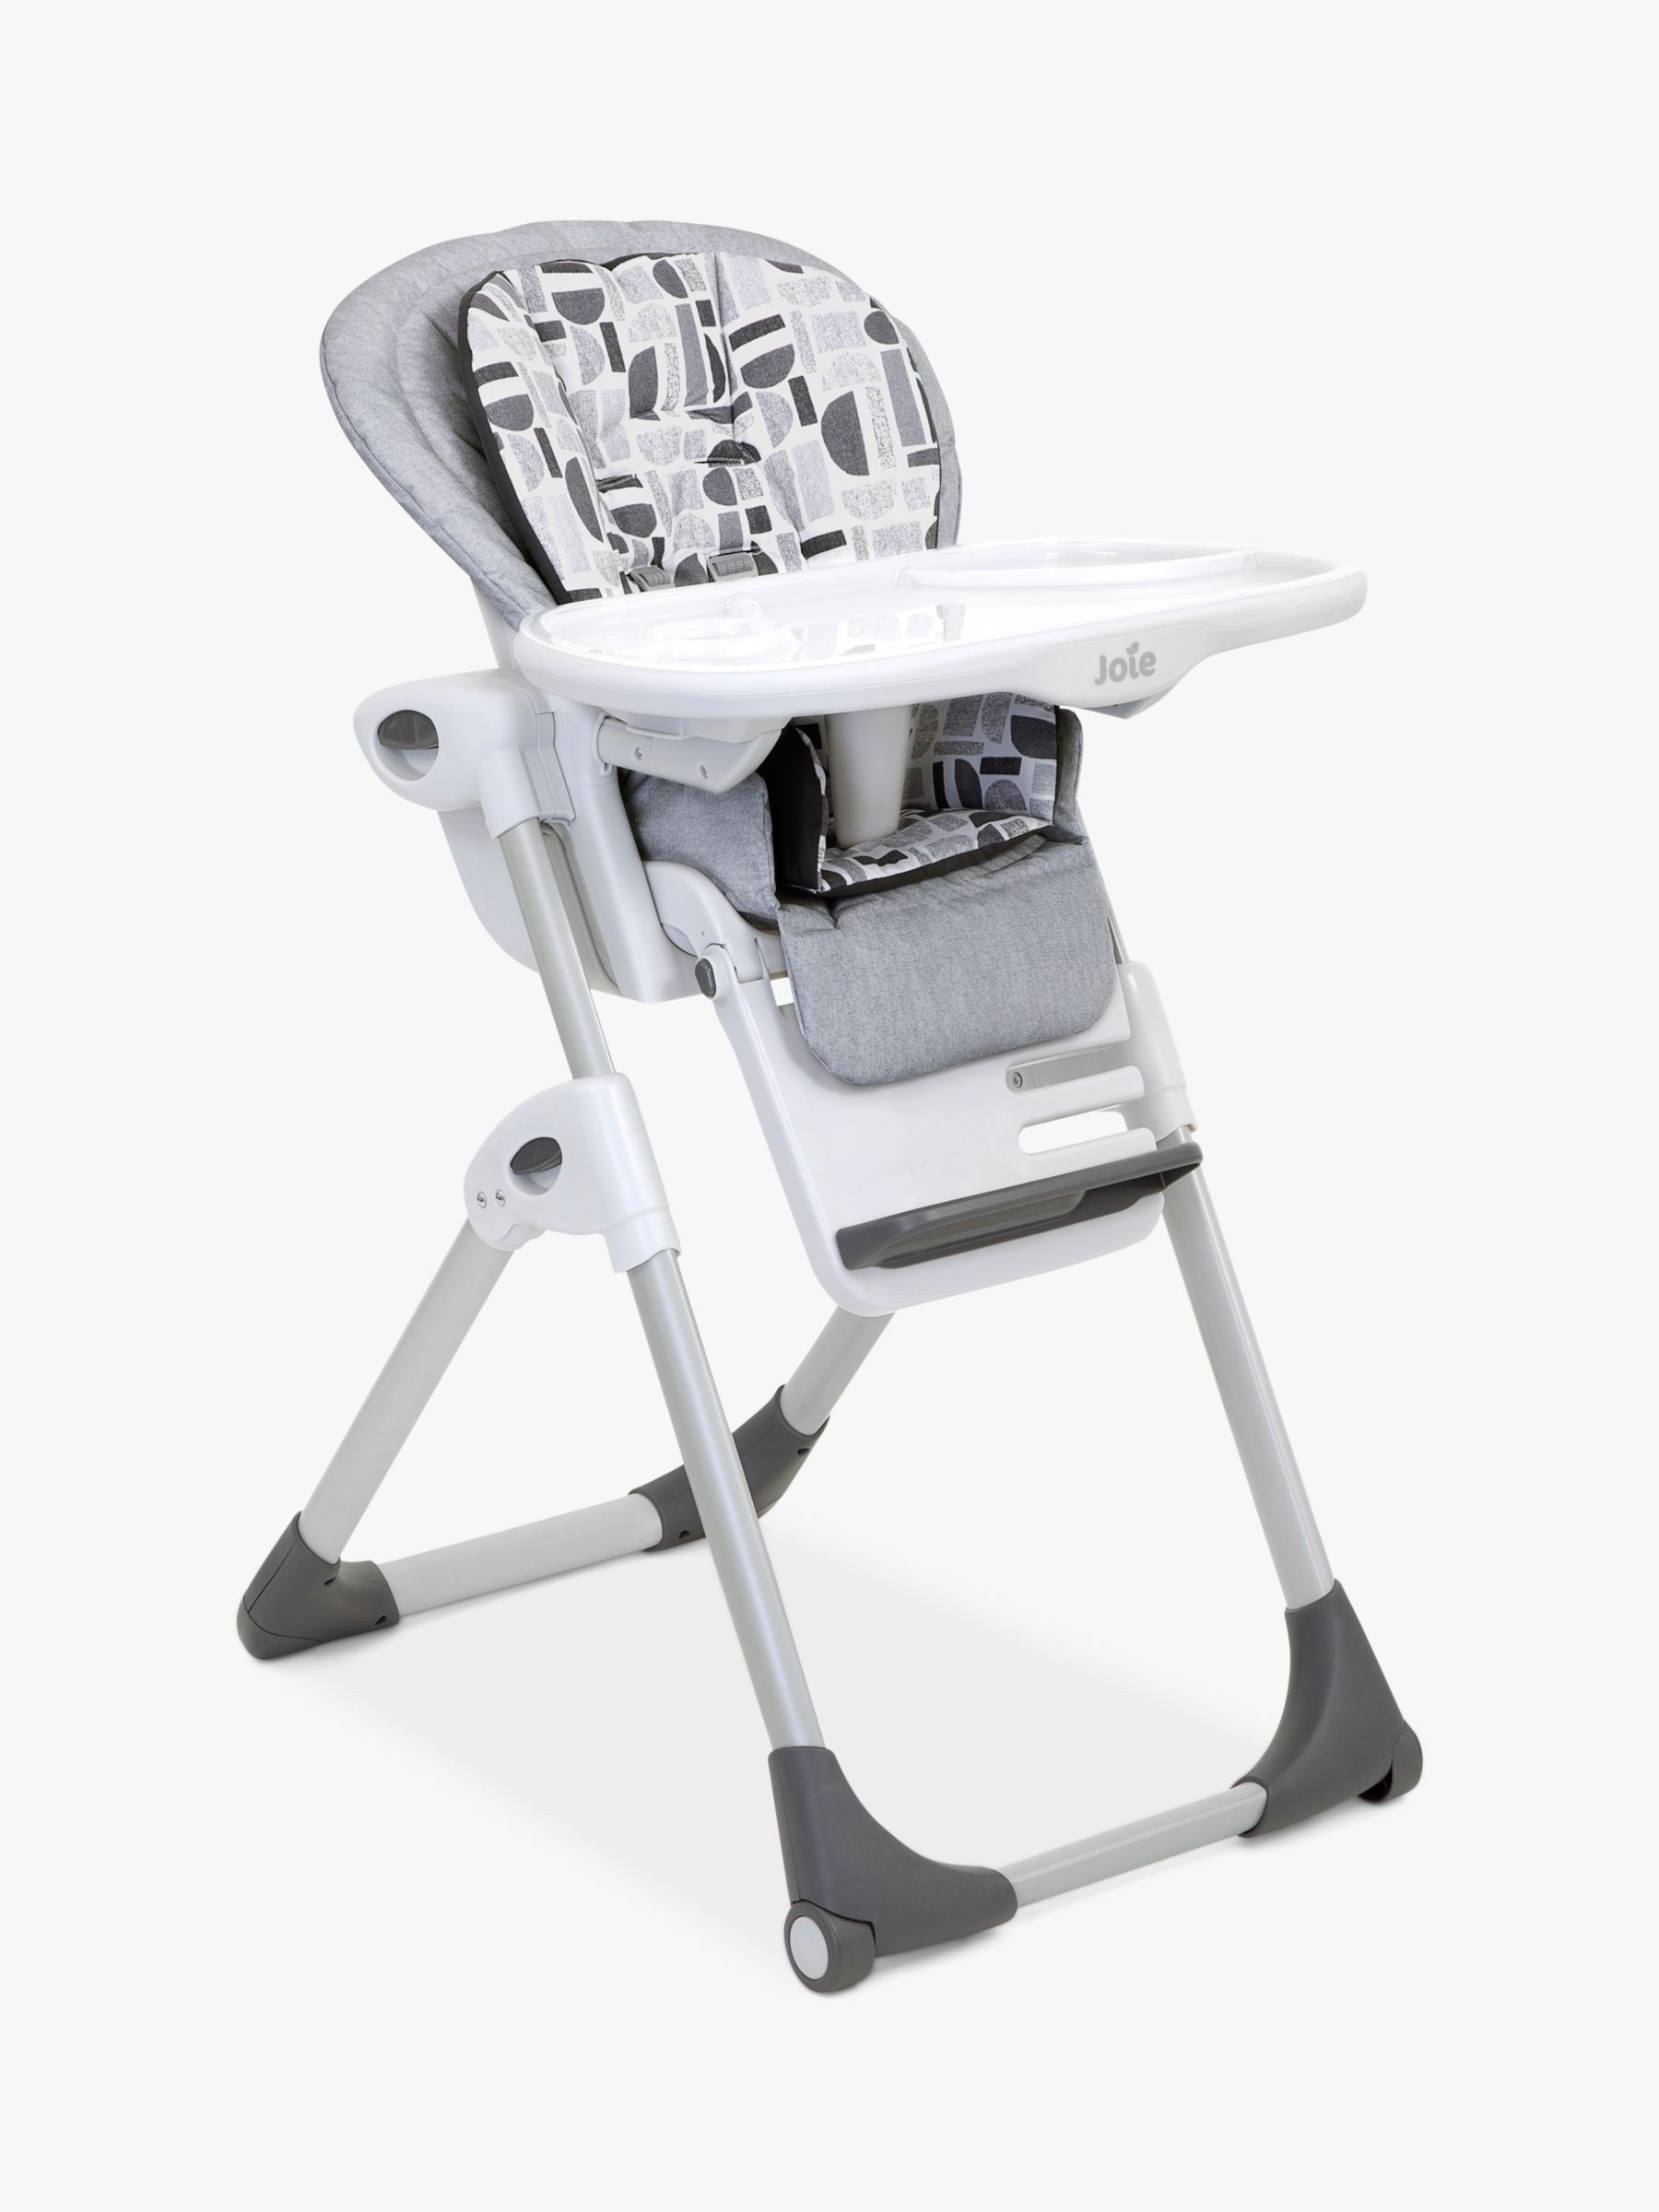 Joie Baby Joie Baby Mimzy 2 in 1 Highchair, Logan